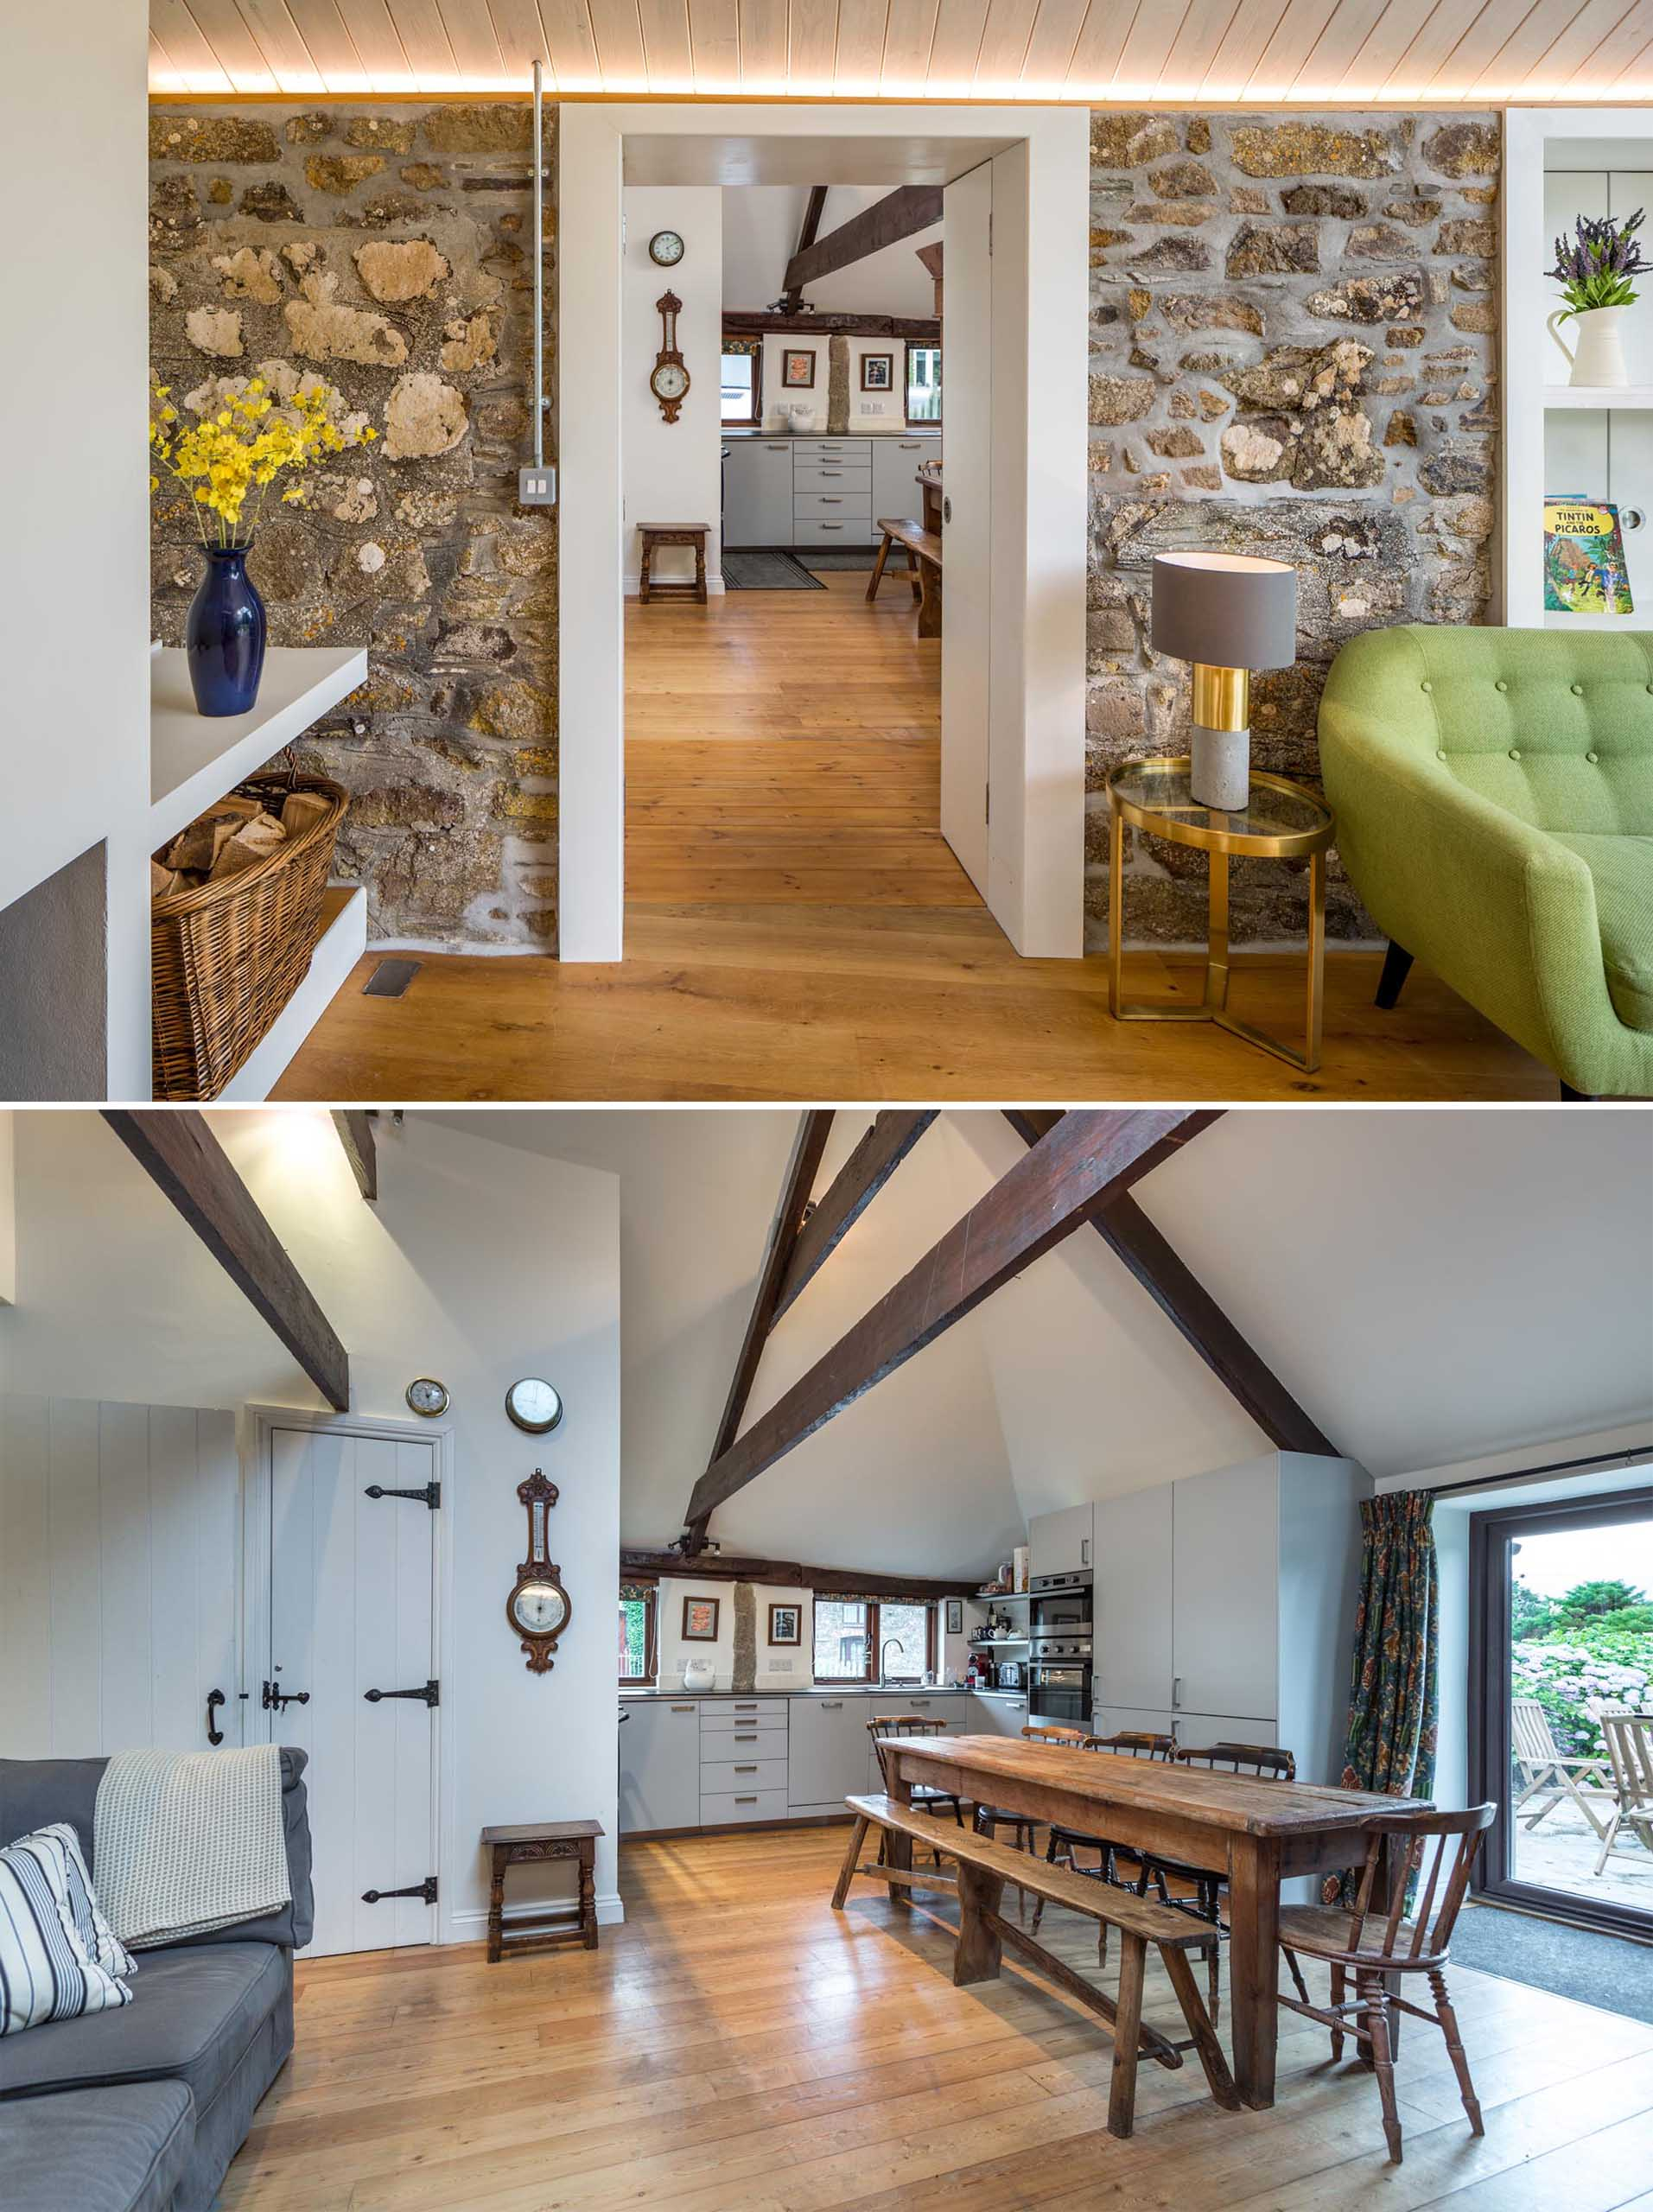 In this kitchen, accessed through an opening in a stone wall, dark wood beams draw the eye upwards to the high ceiling.